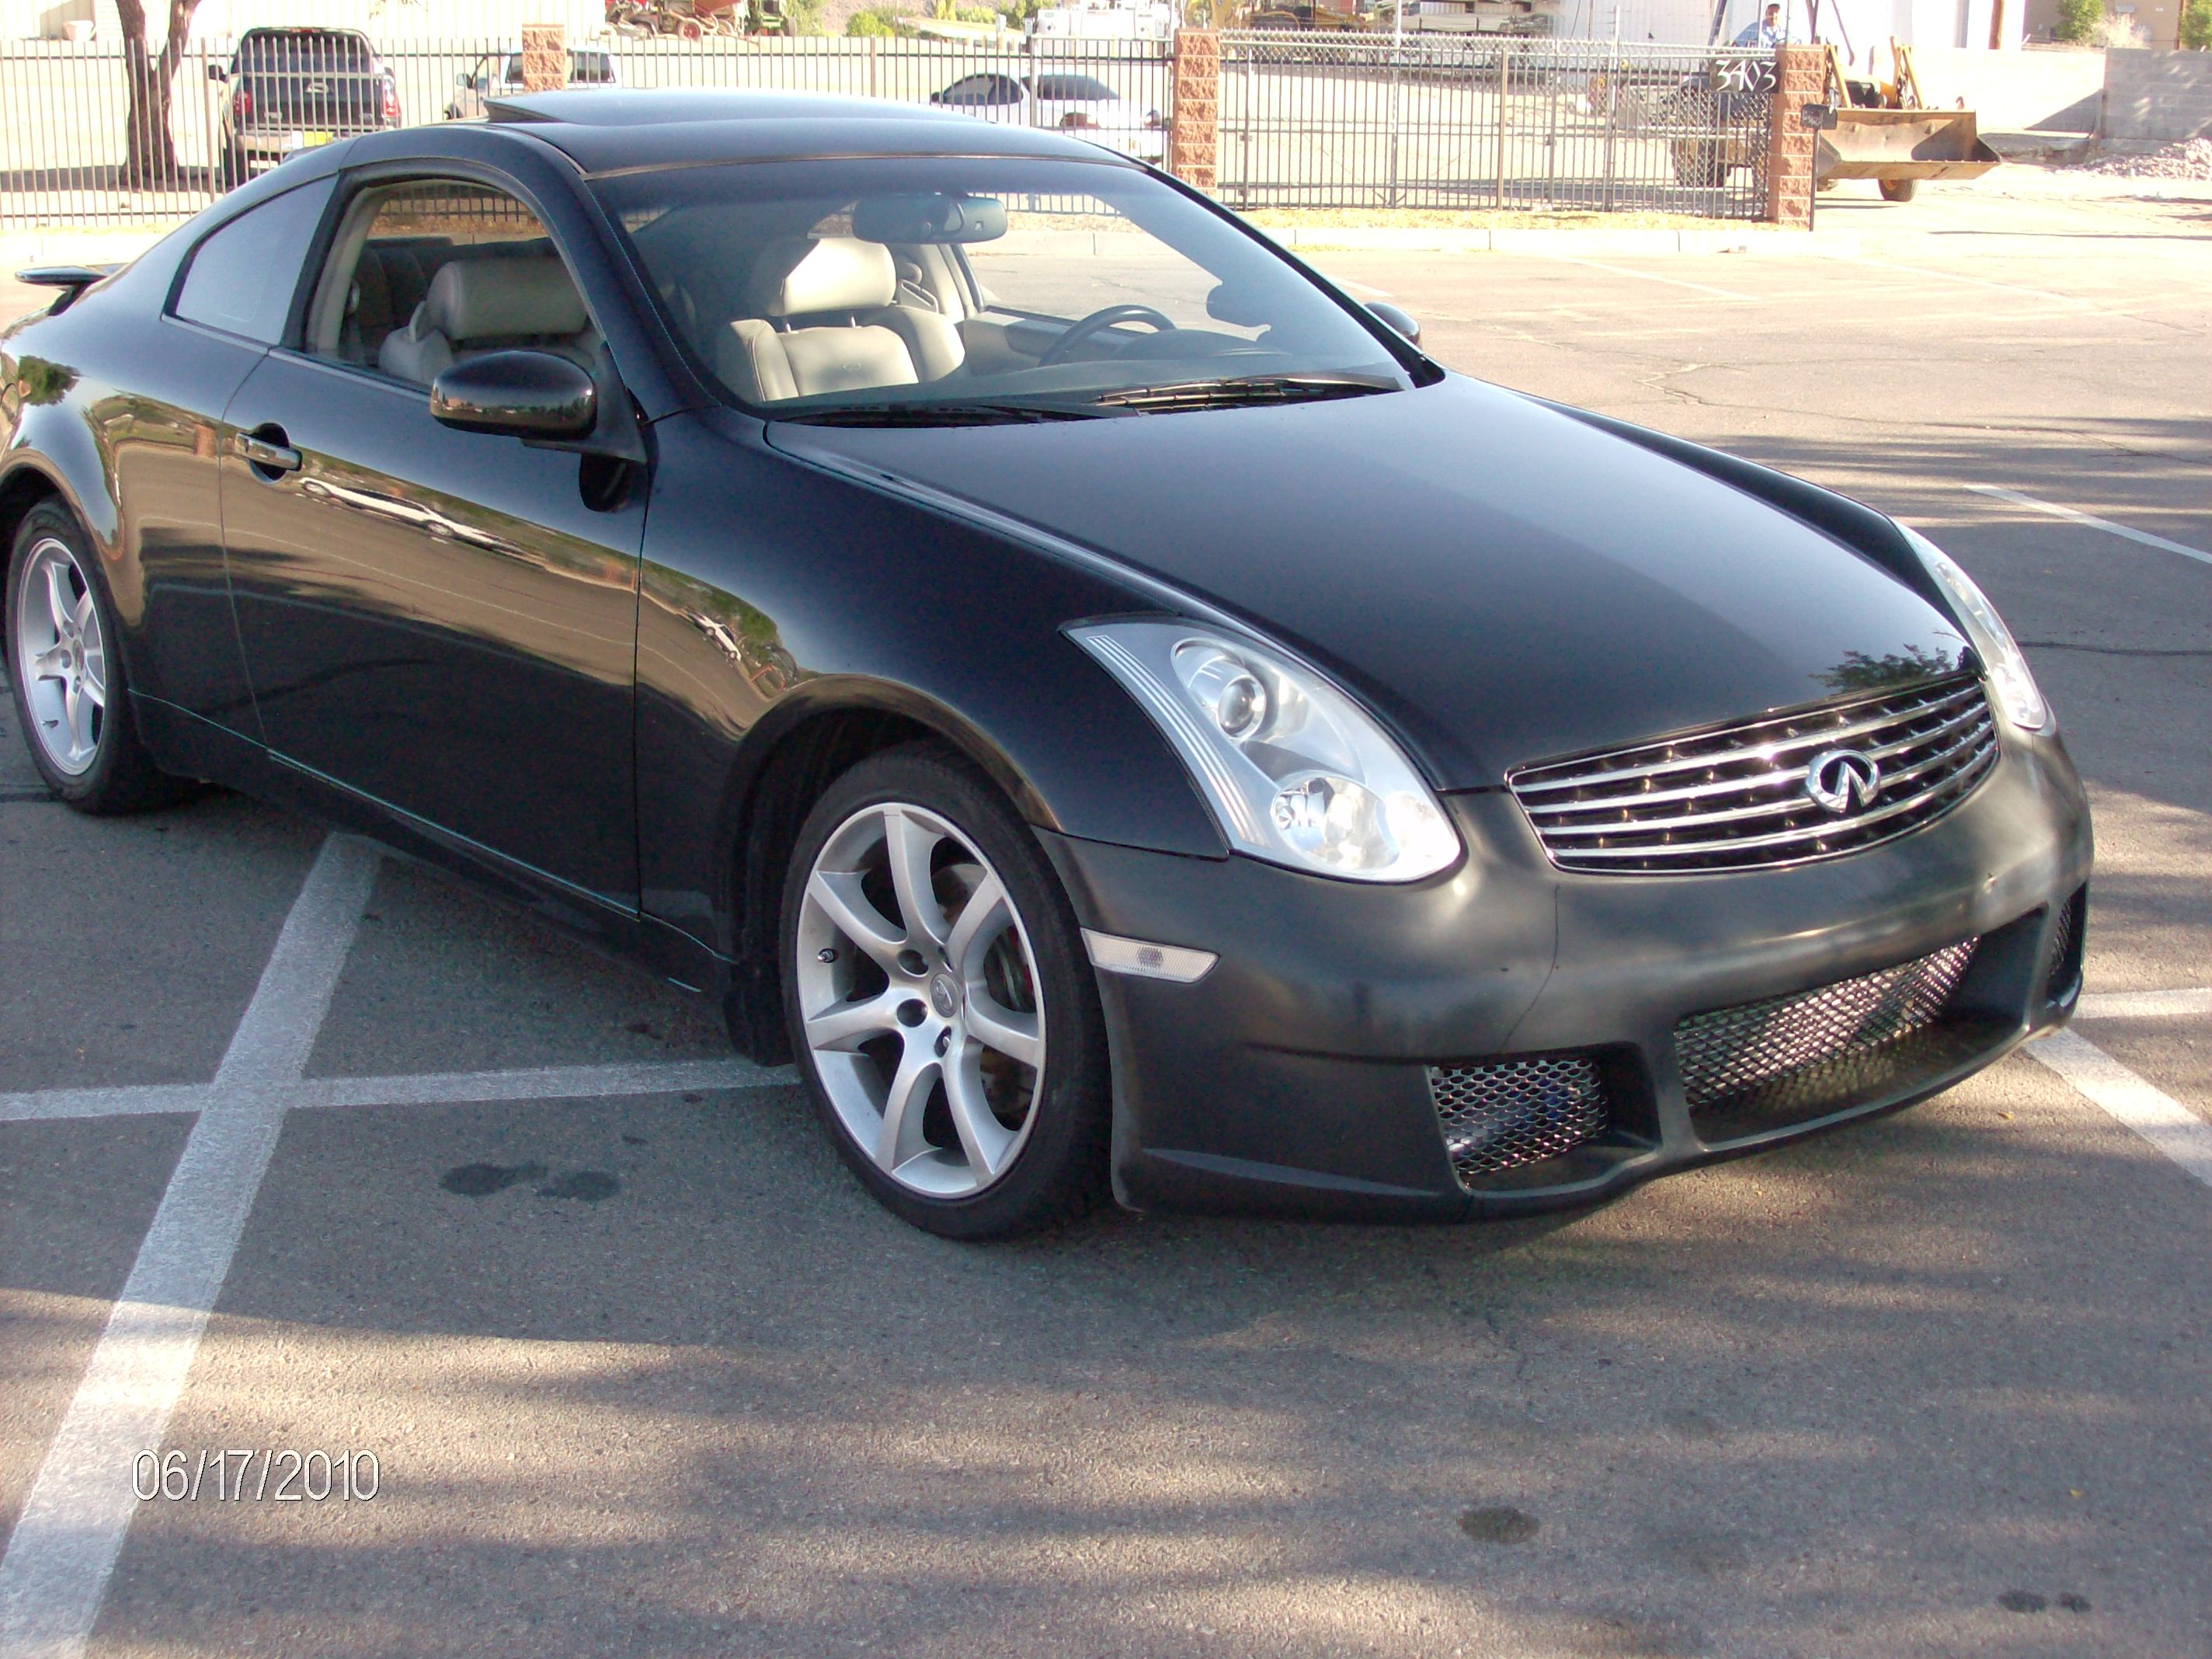 2006 Infiniti G35 coupe 60-130 MPH Scan